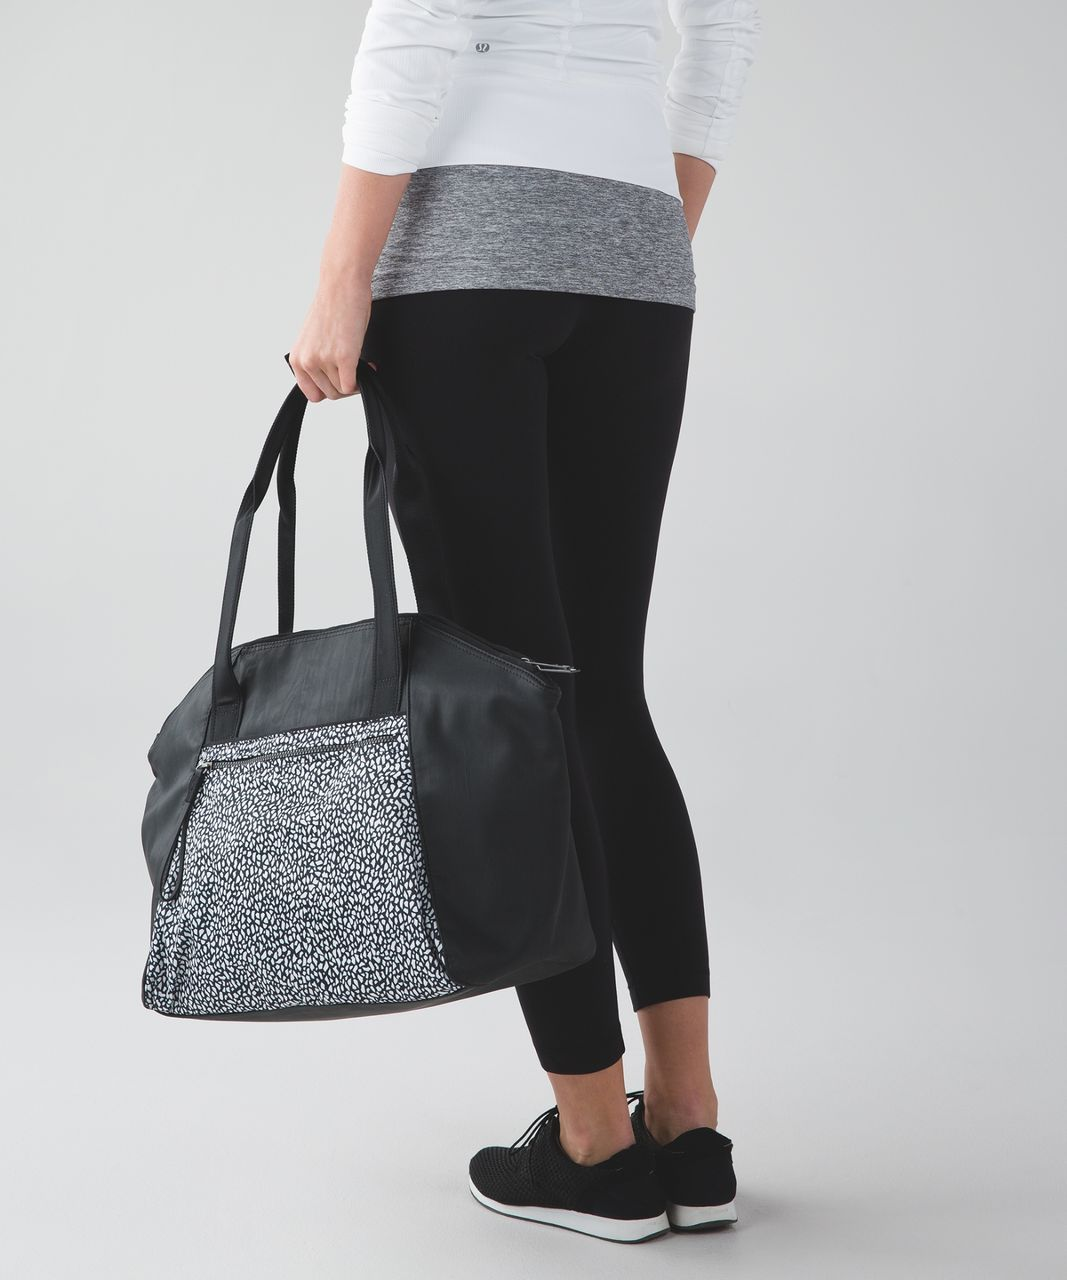 Lululemon Free To Be Bag - Miss Mosaic Black / Black